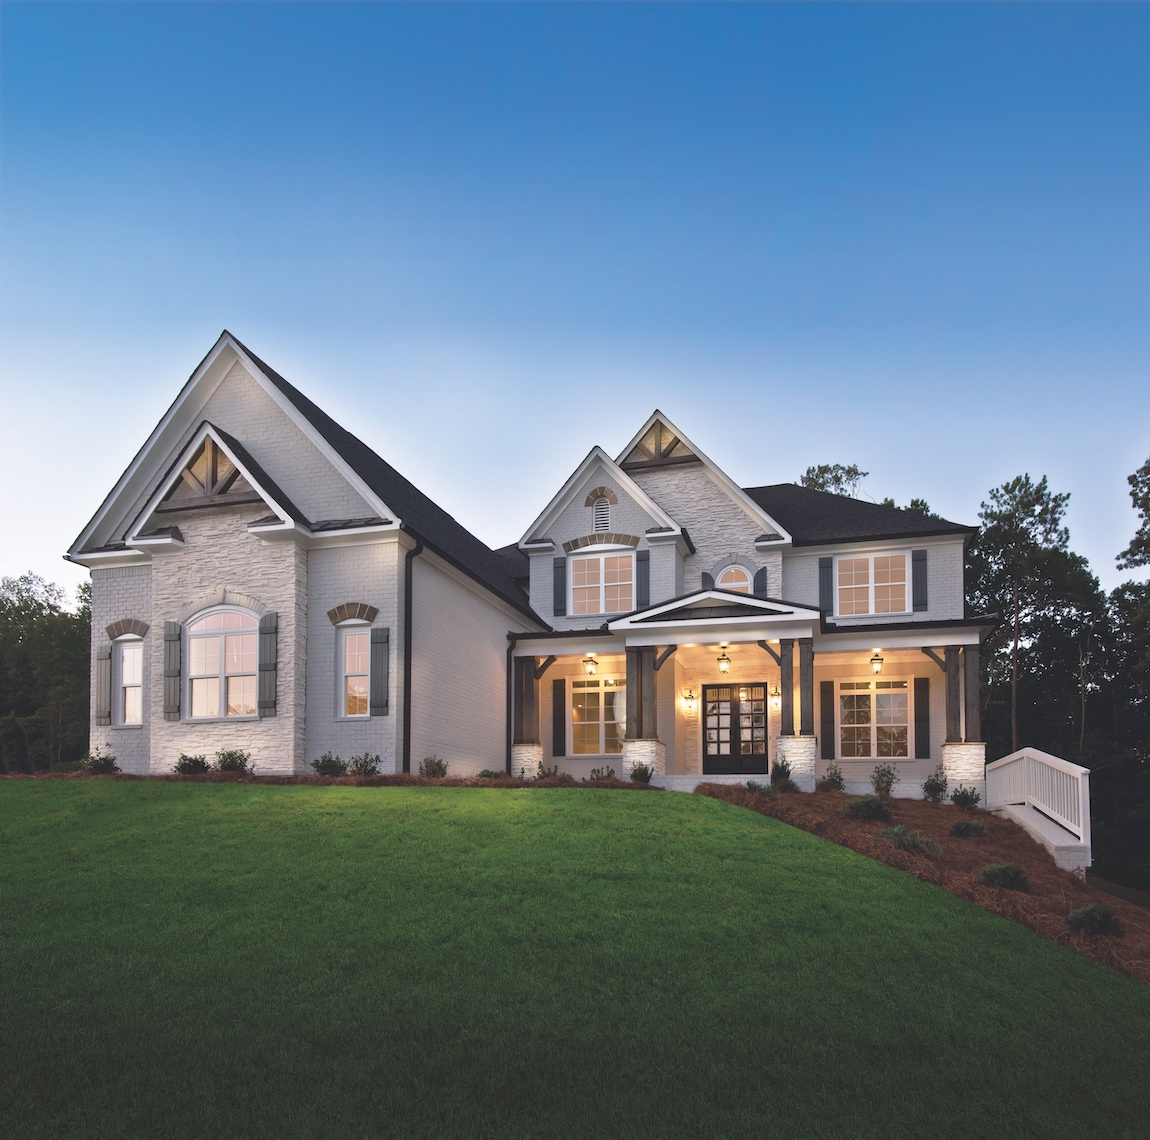 Toll Brothers model home in Georgia with porch lighting.